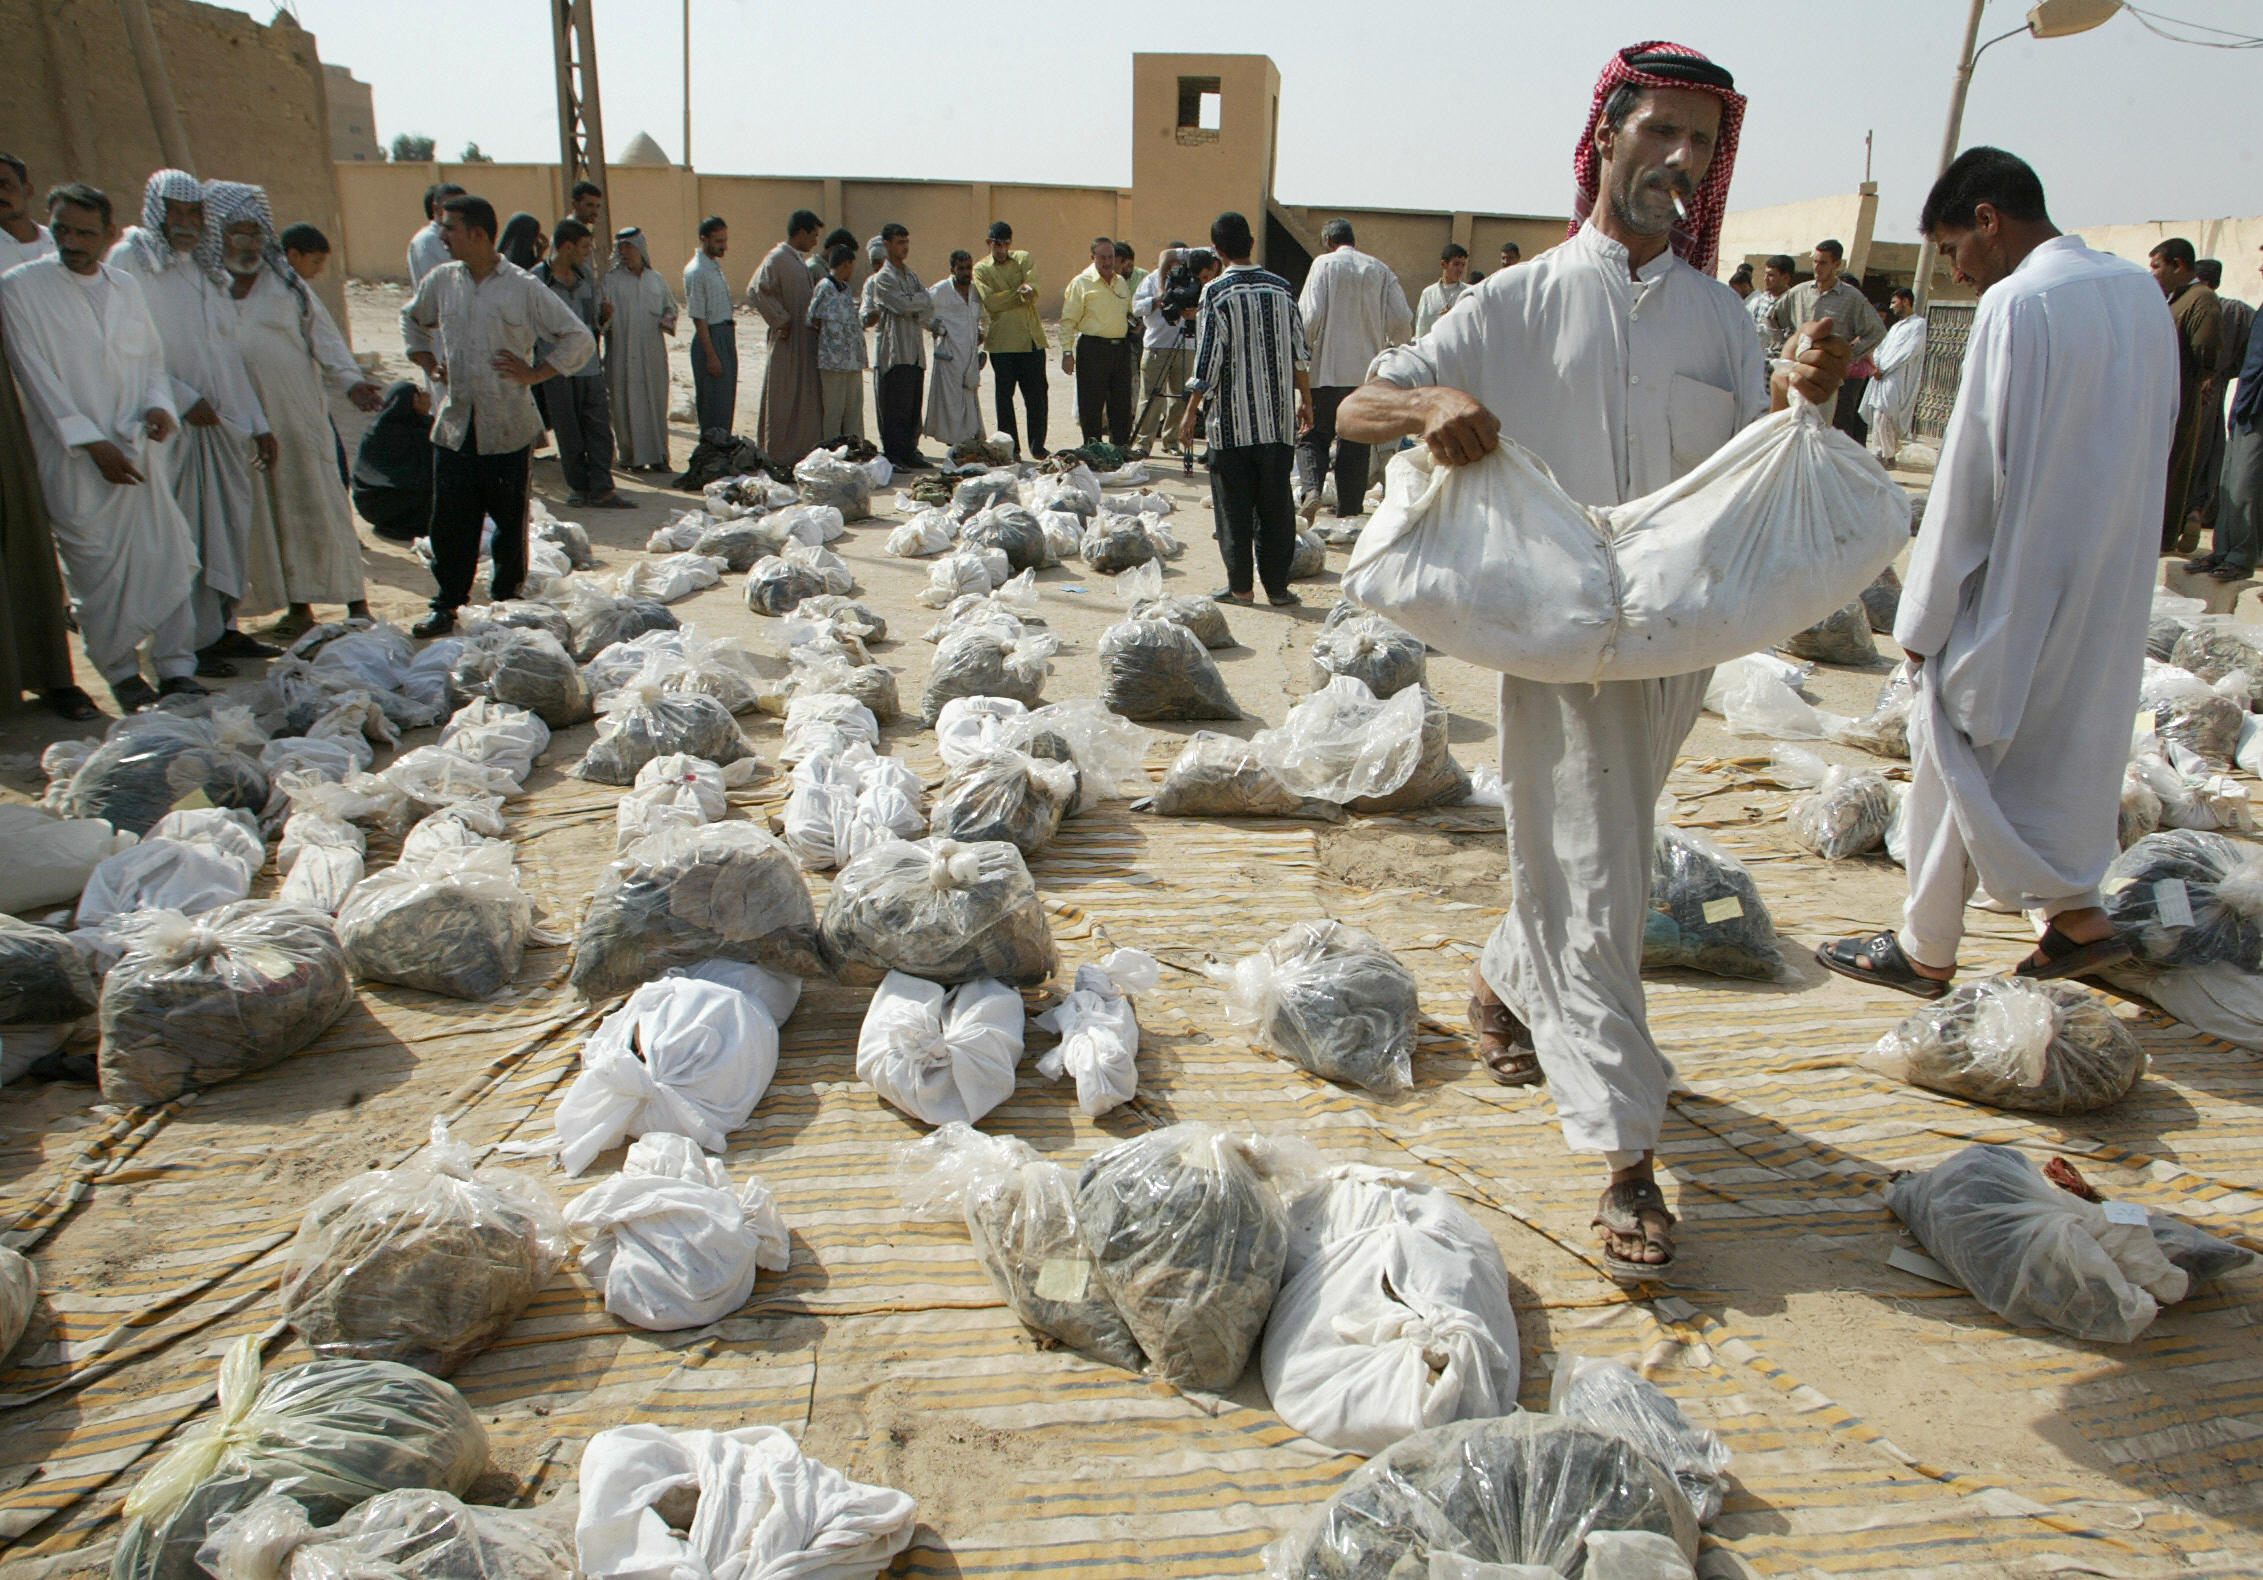 Remains from mass grave near Najaf / gettyImages